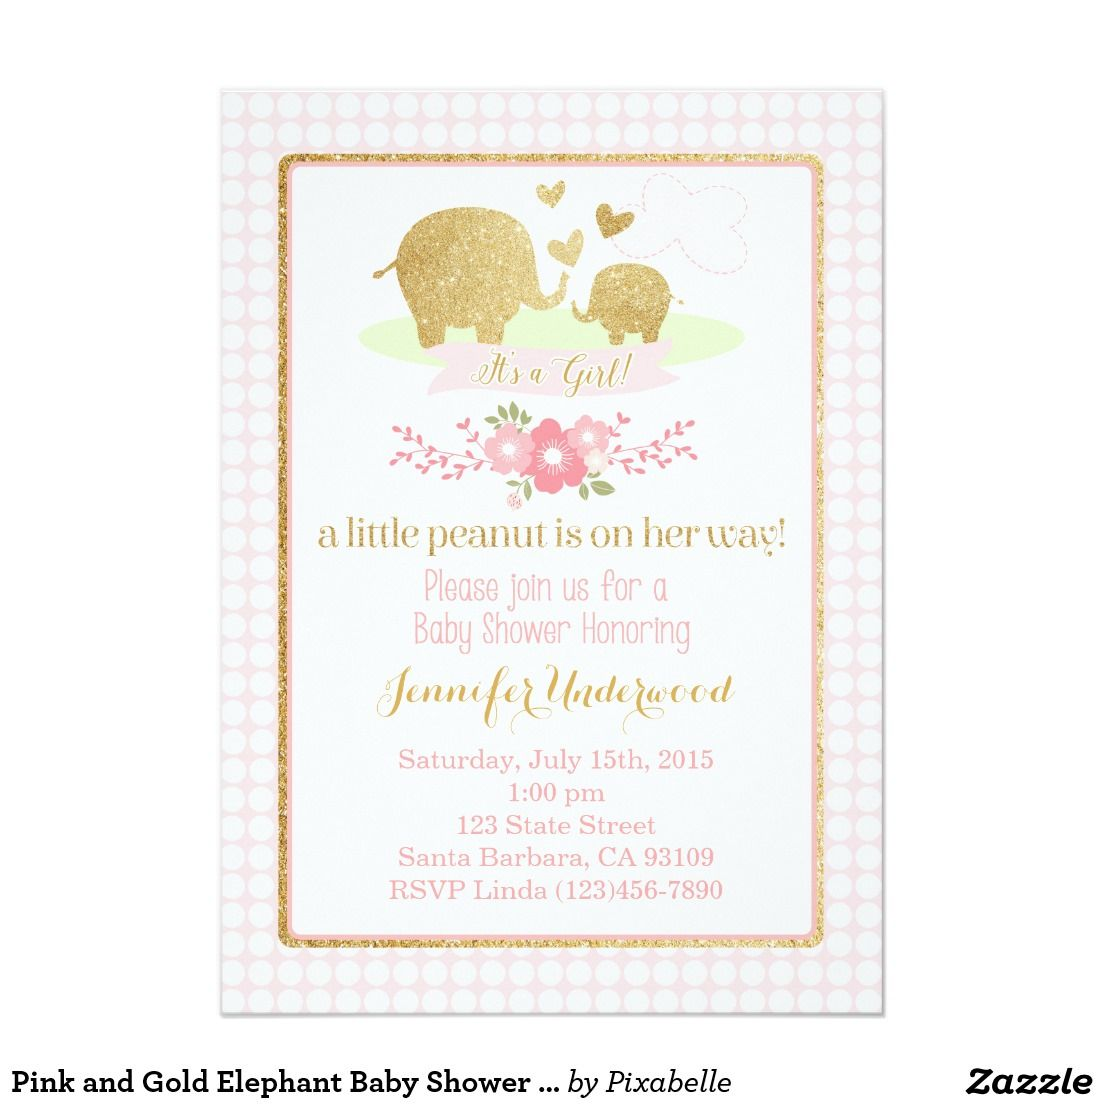 Pink and Gold Elephant Baby Shower Invitation | Elephant baby ...